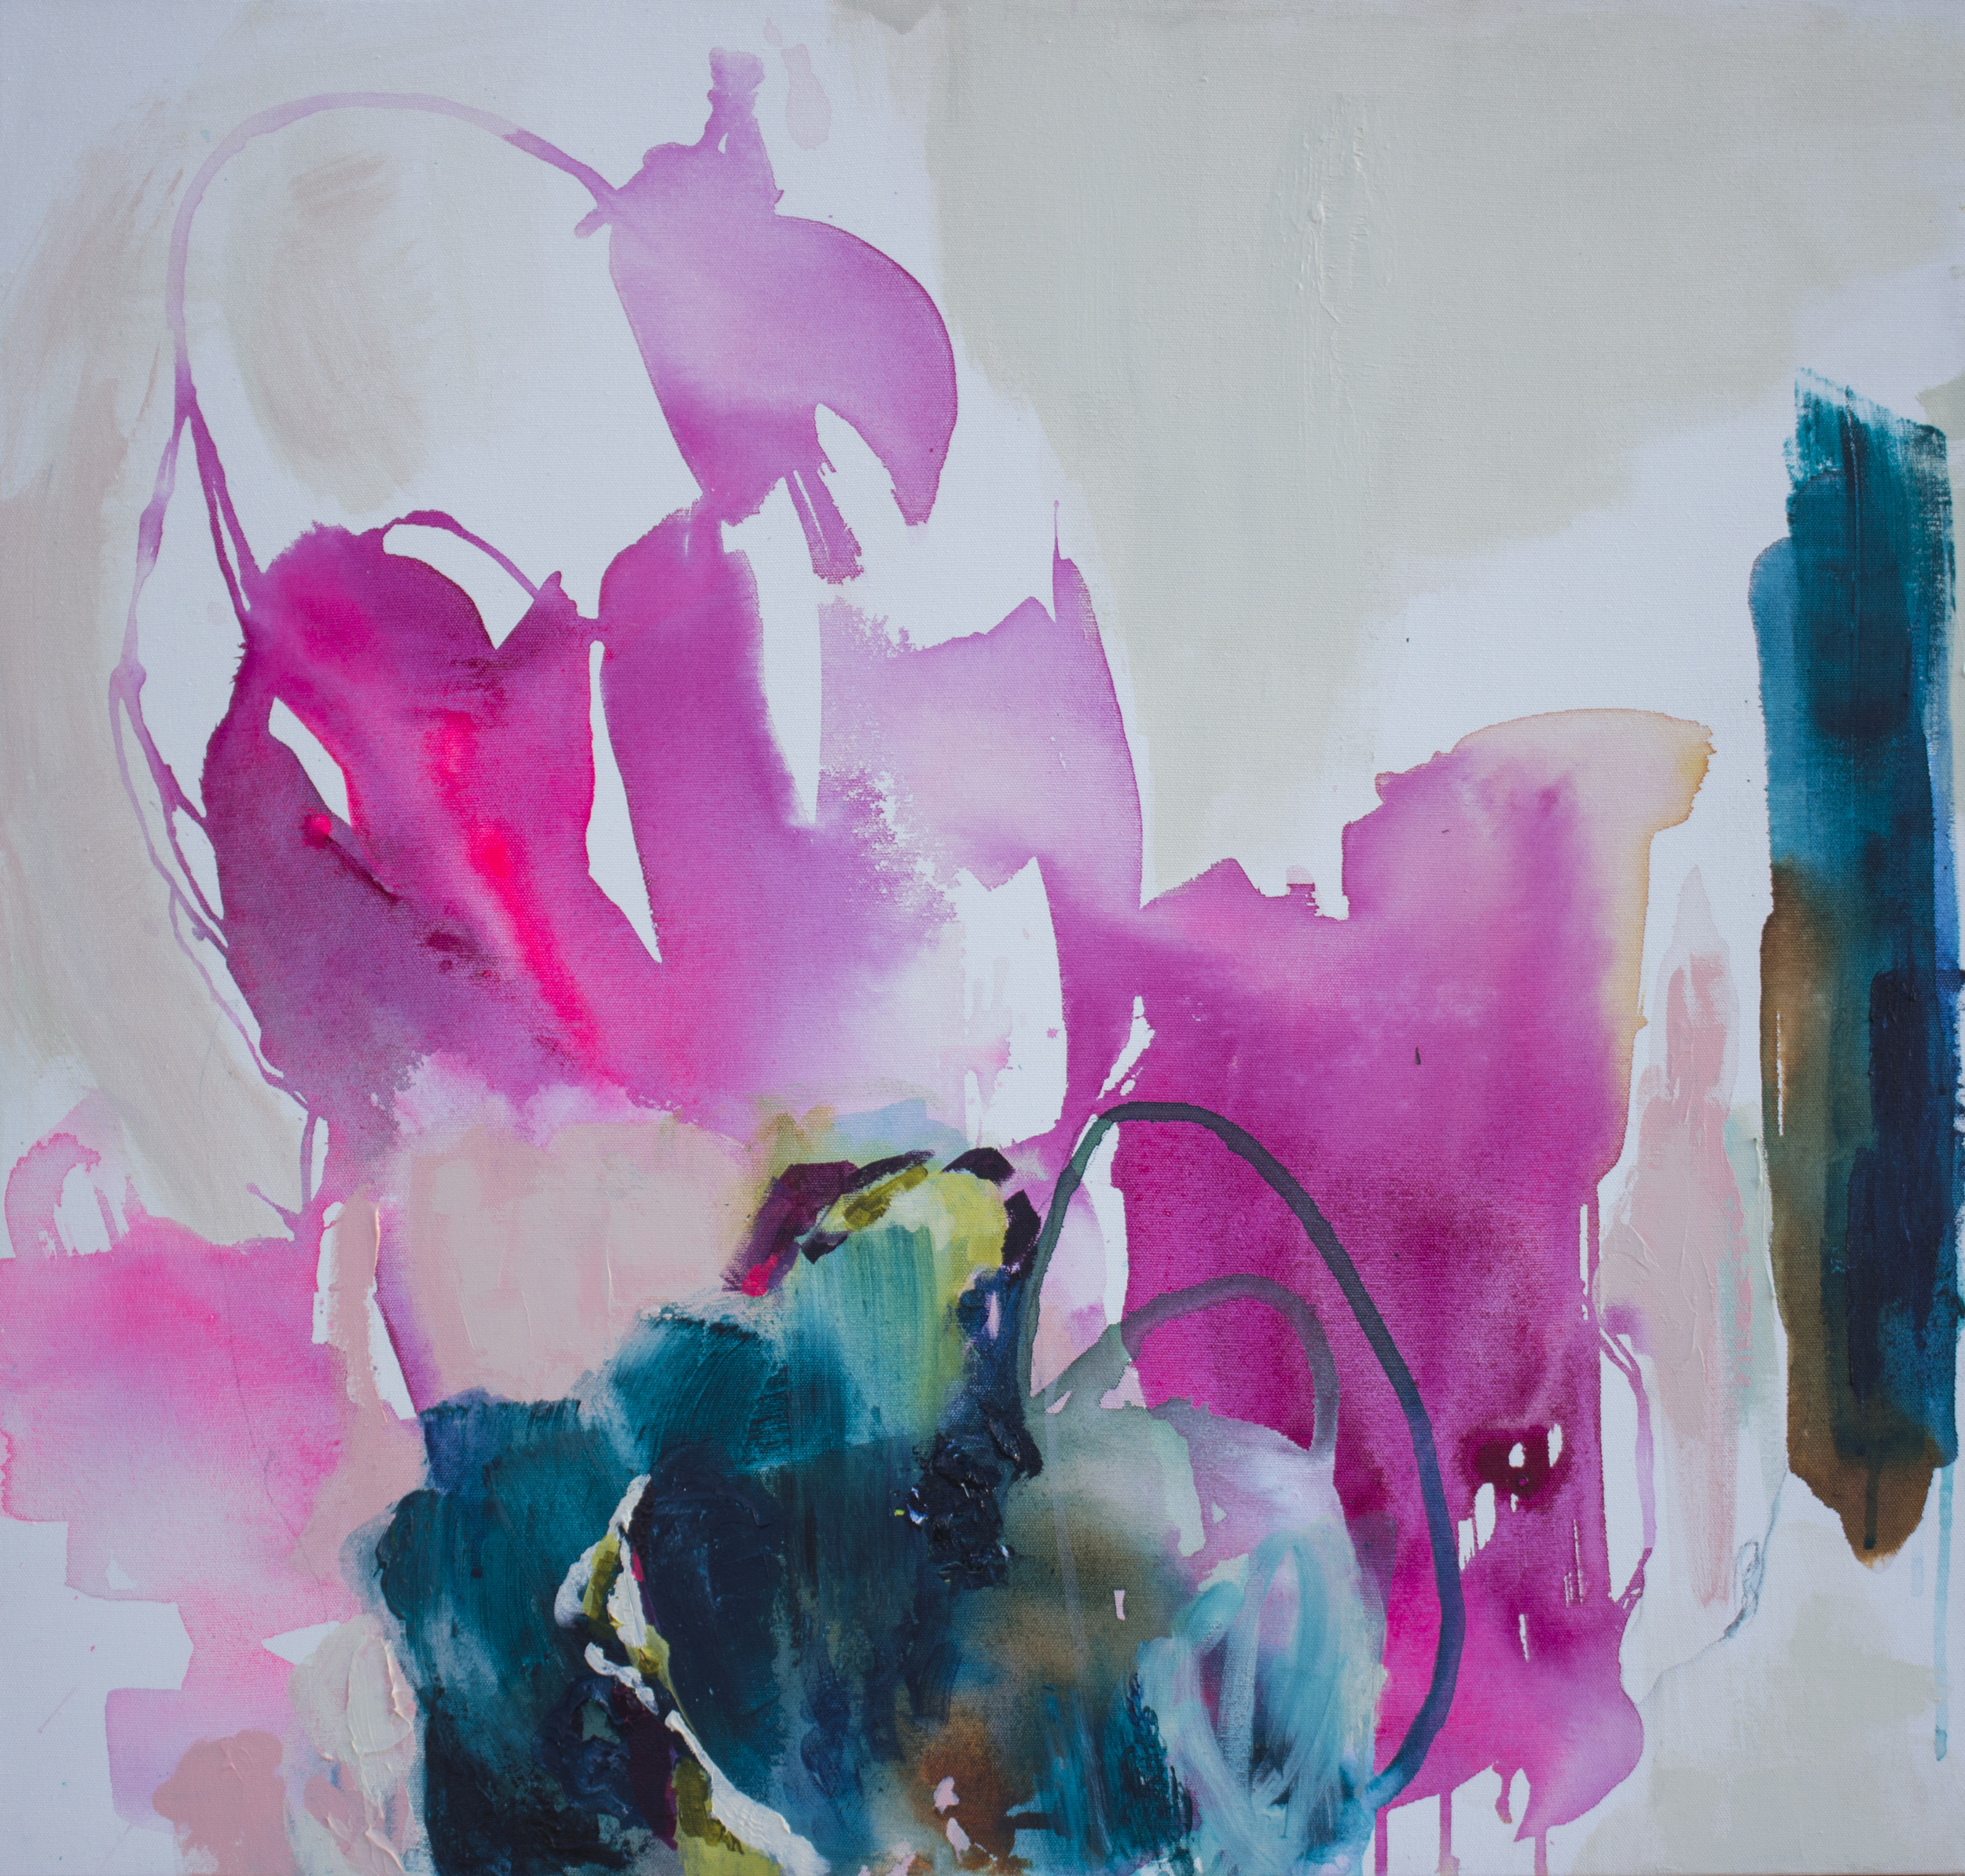 Tryst 27 in. x 29 in. acrylic on canvas   sold